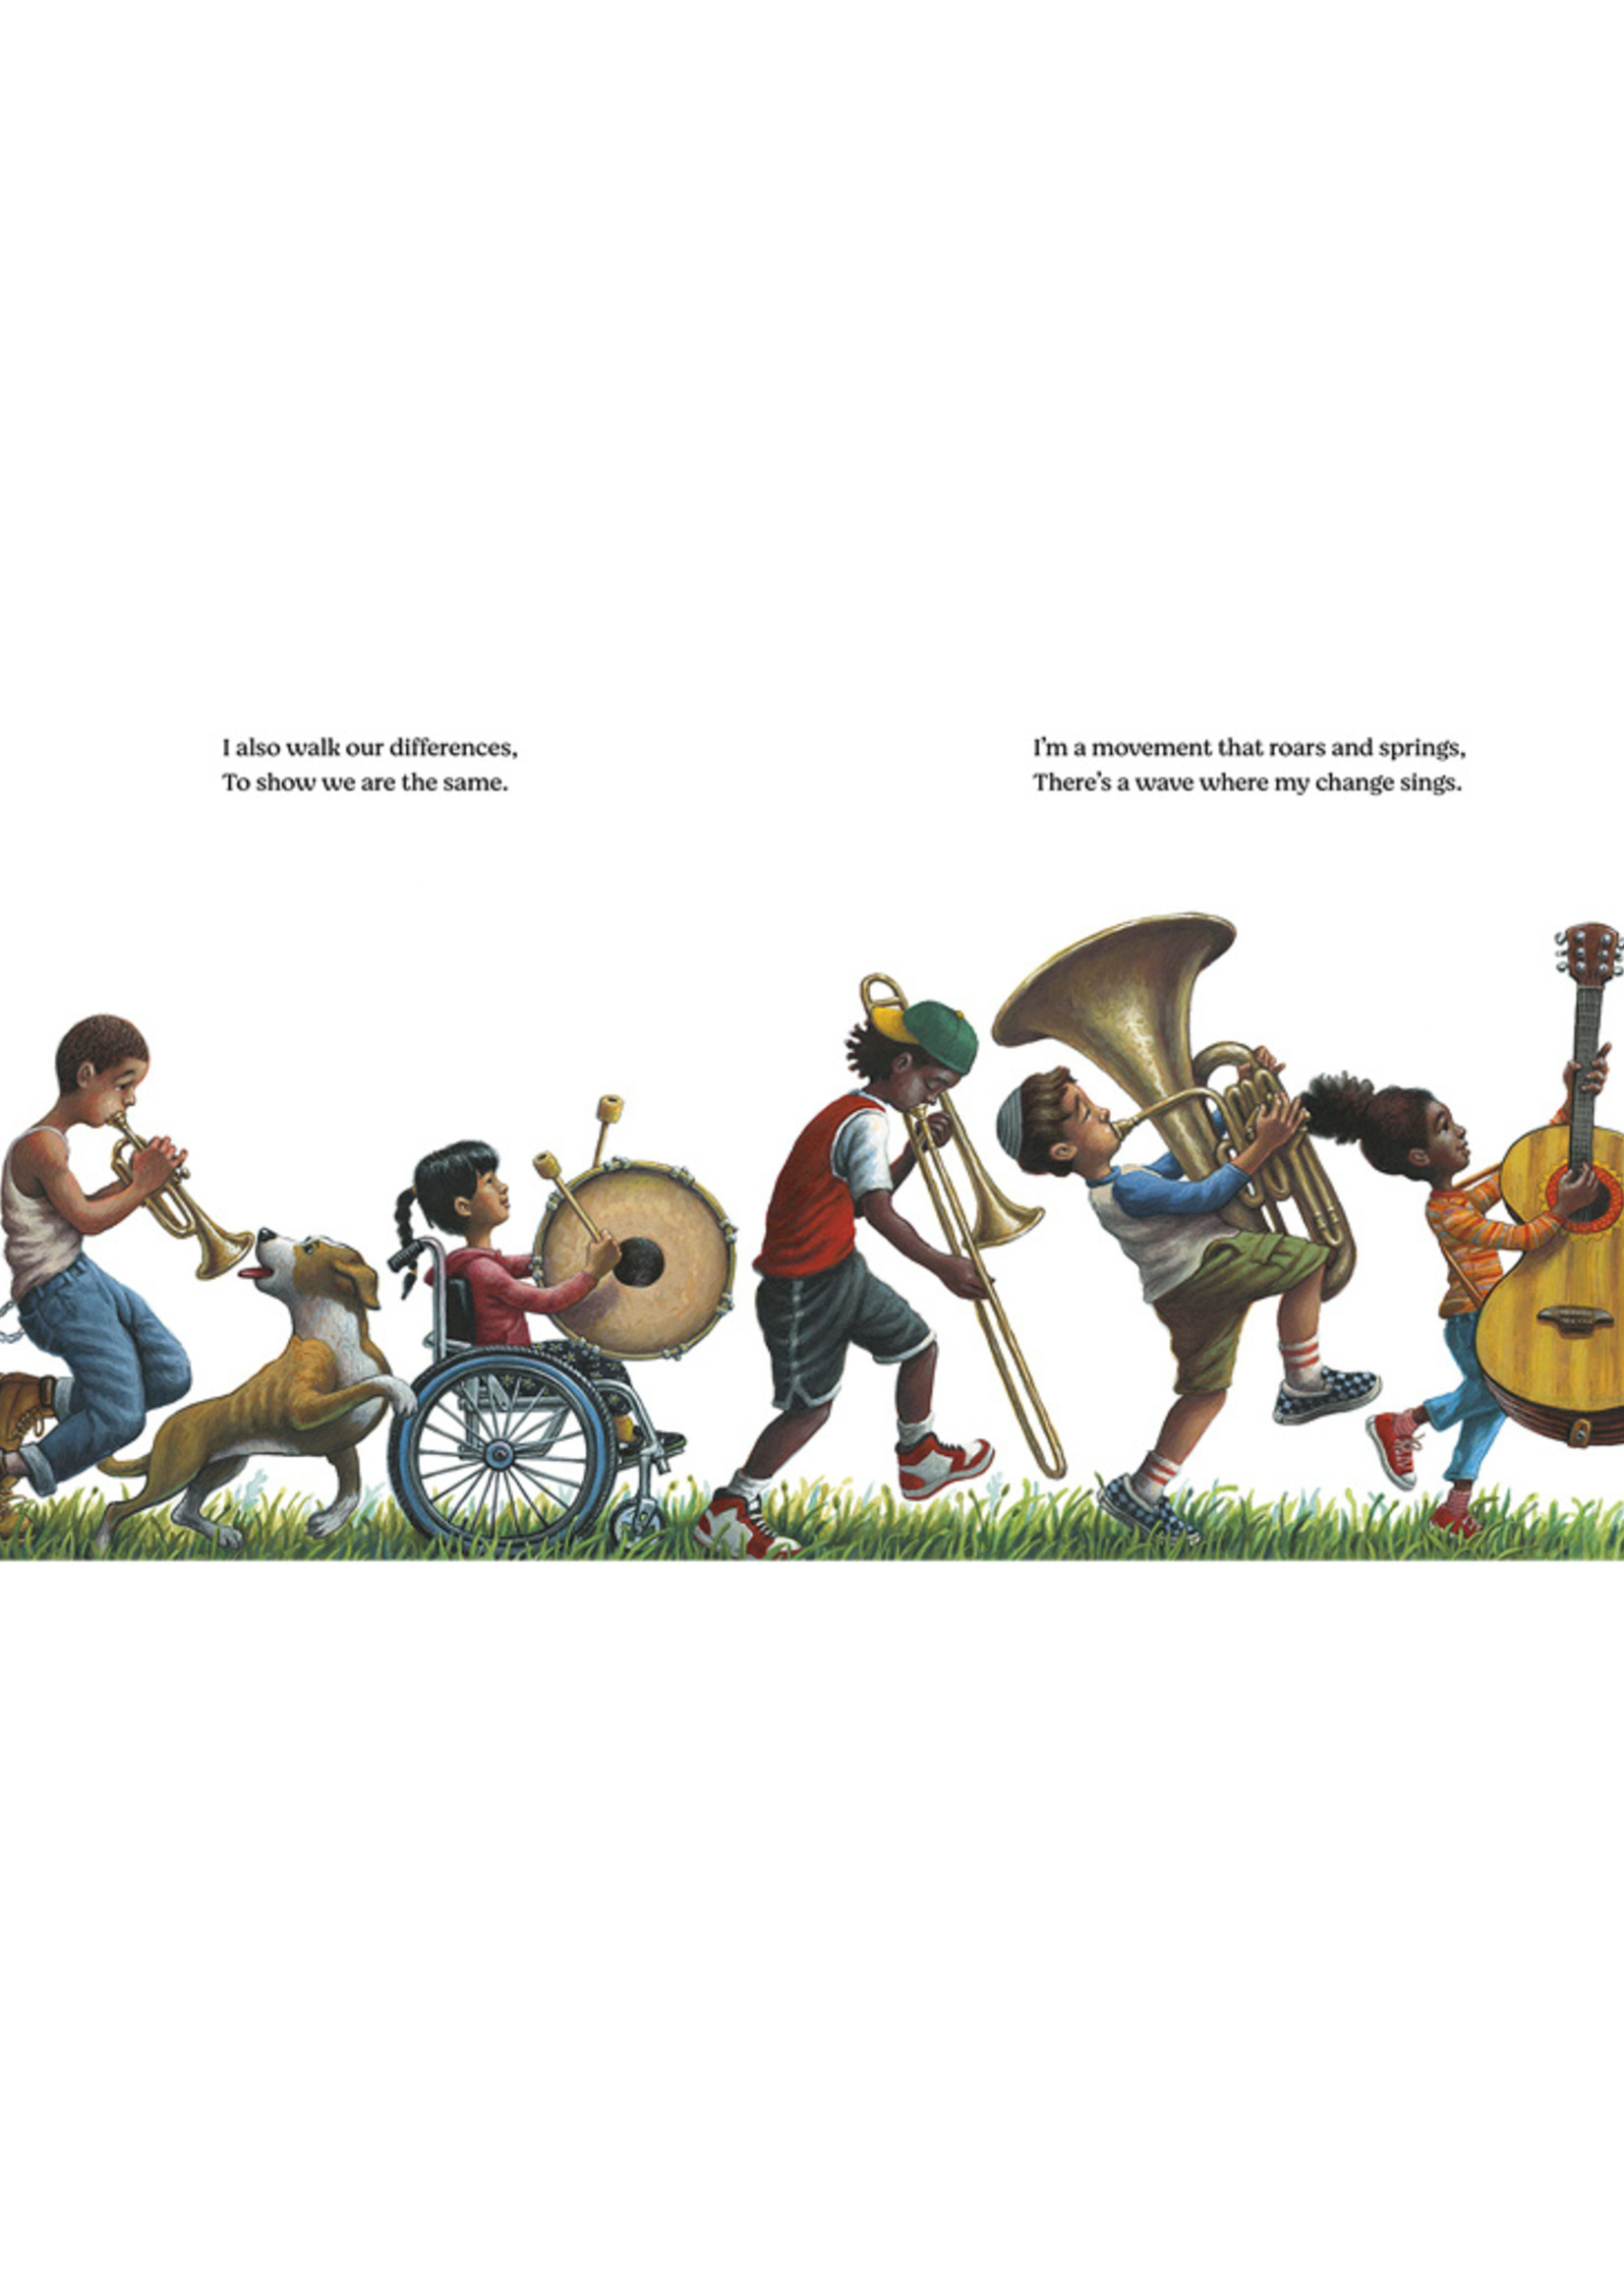 Change Sings, A Children's Anthem - Hardcover